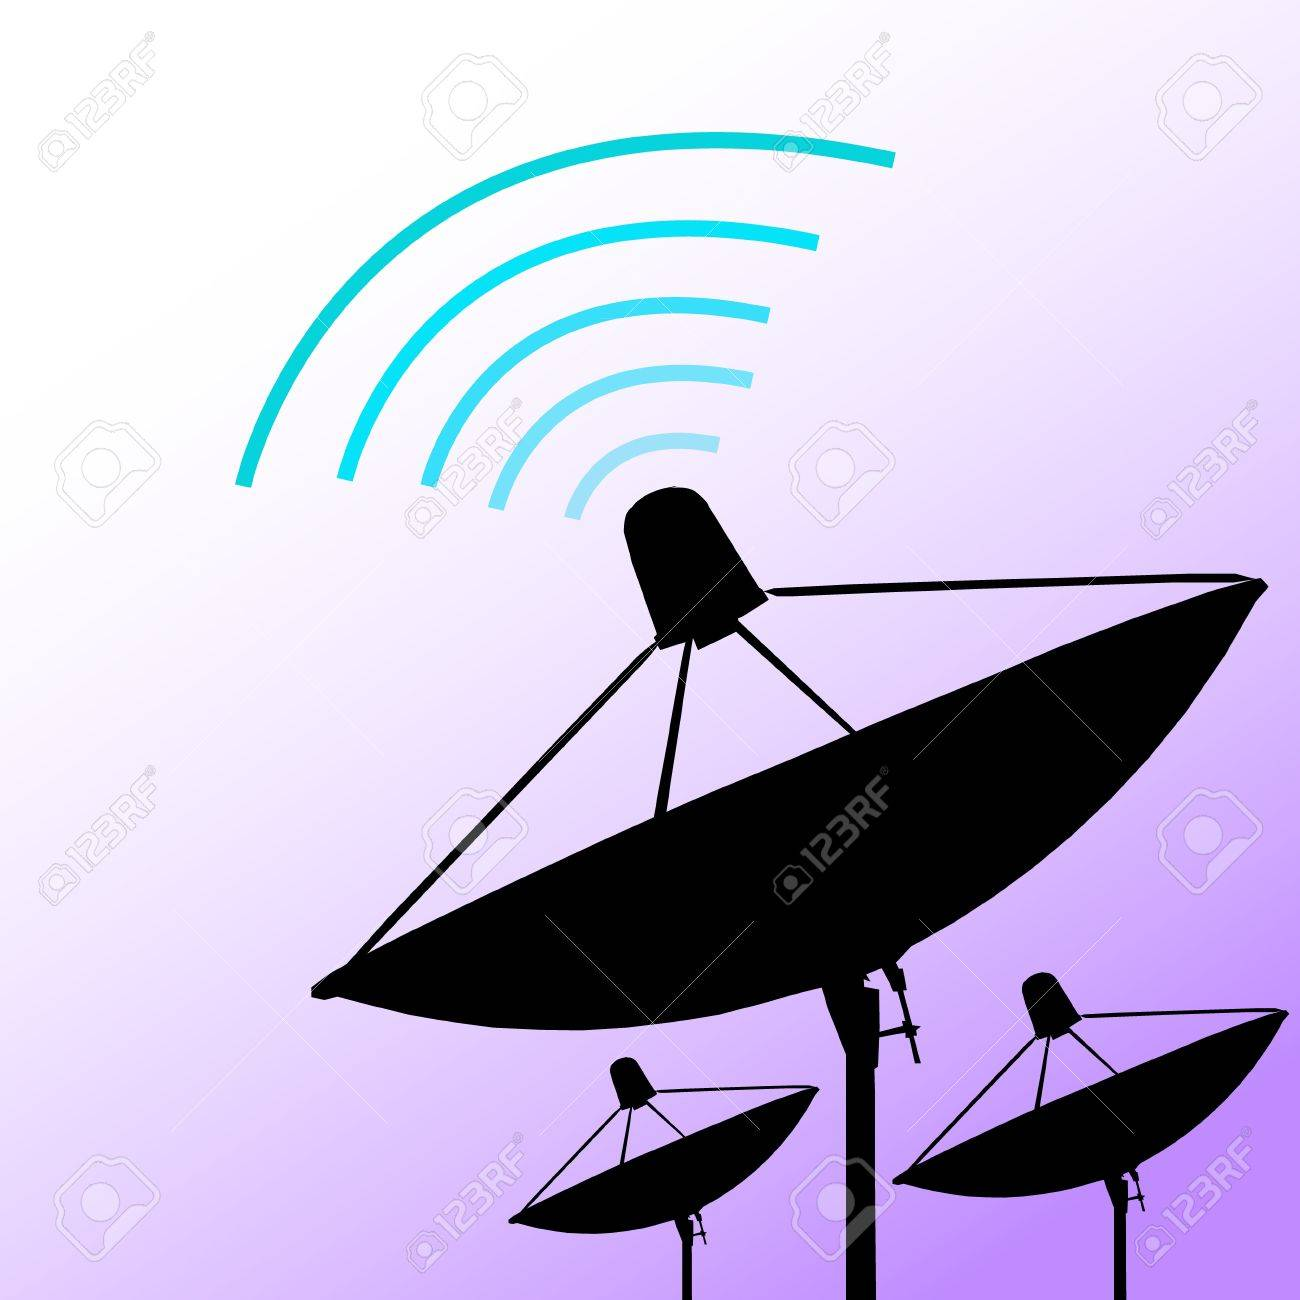 Silhouette satellite on purple background  Communication and technology  Vector illustration Stock Vector - 14996210